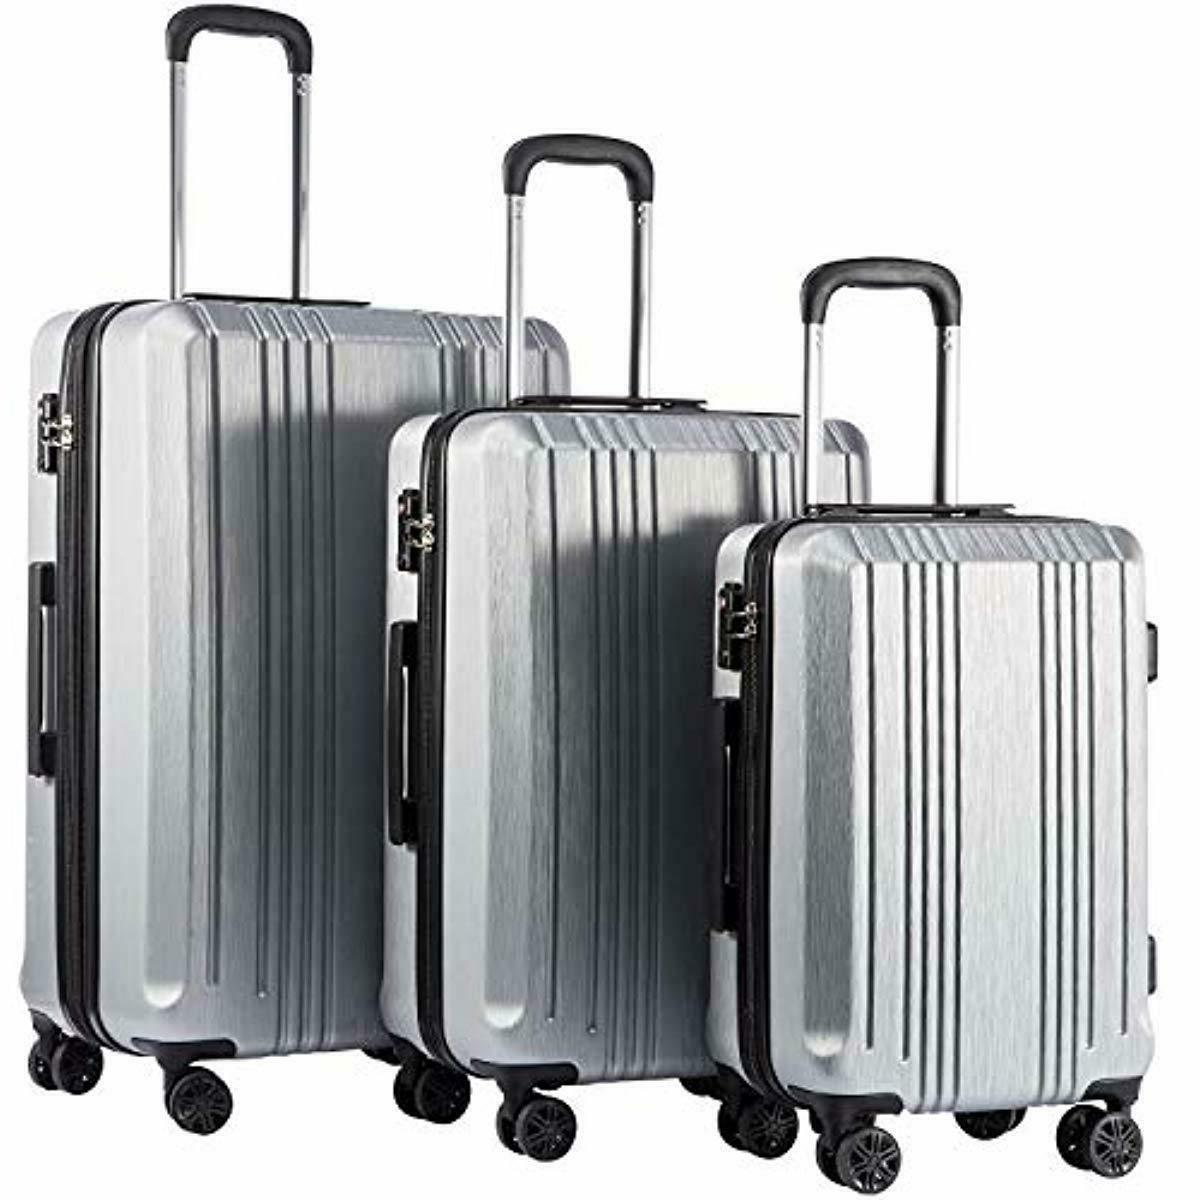 20in24in28in luggage expandable suitcase pc abs 3